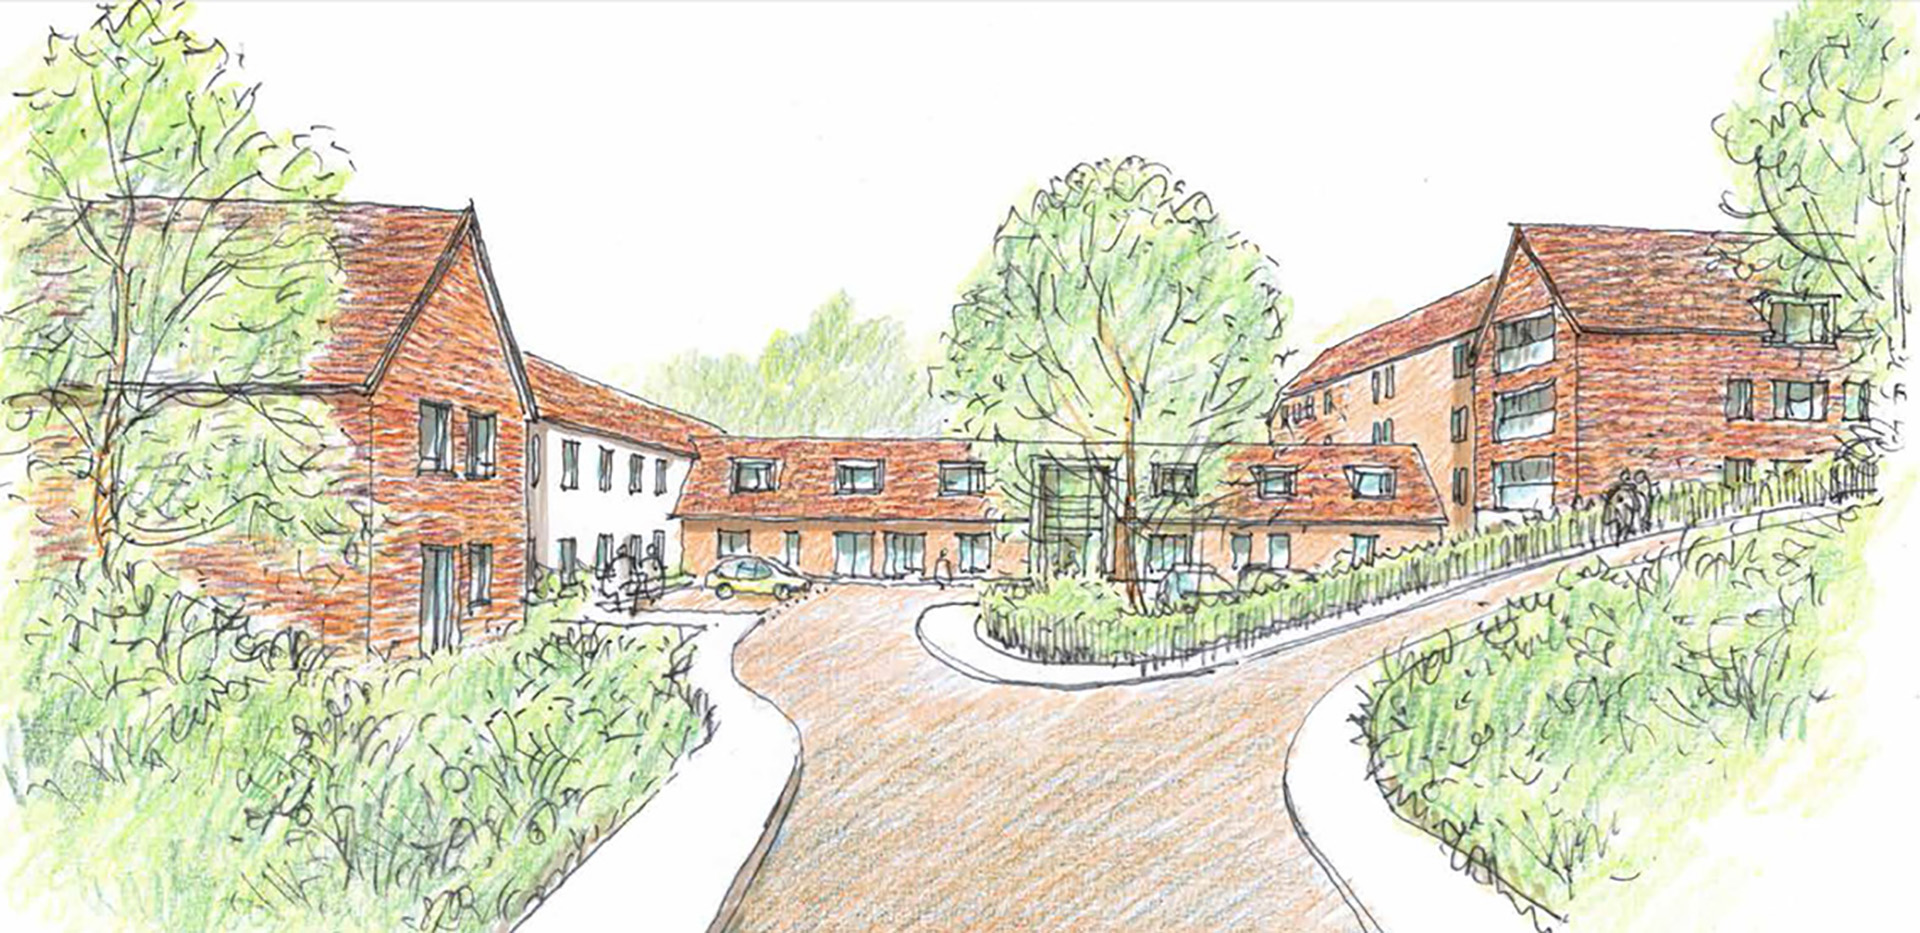 Beard wins Signature contract for two care homes worth £25million